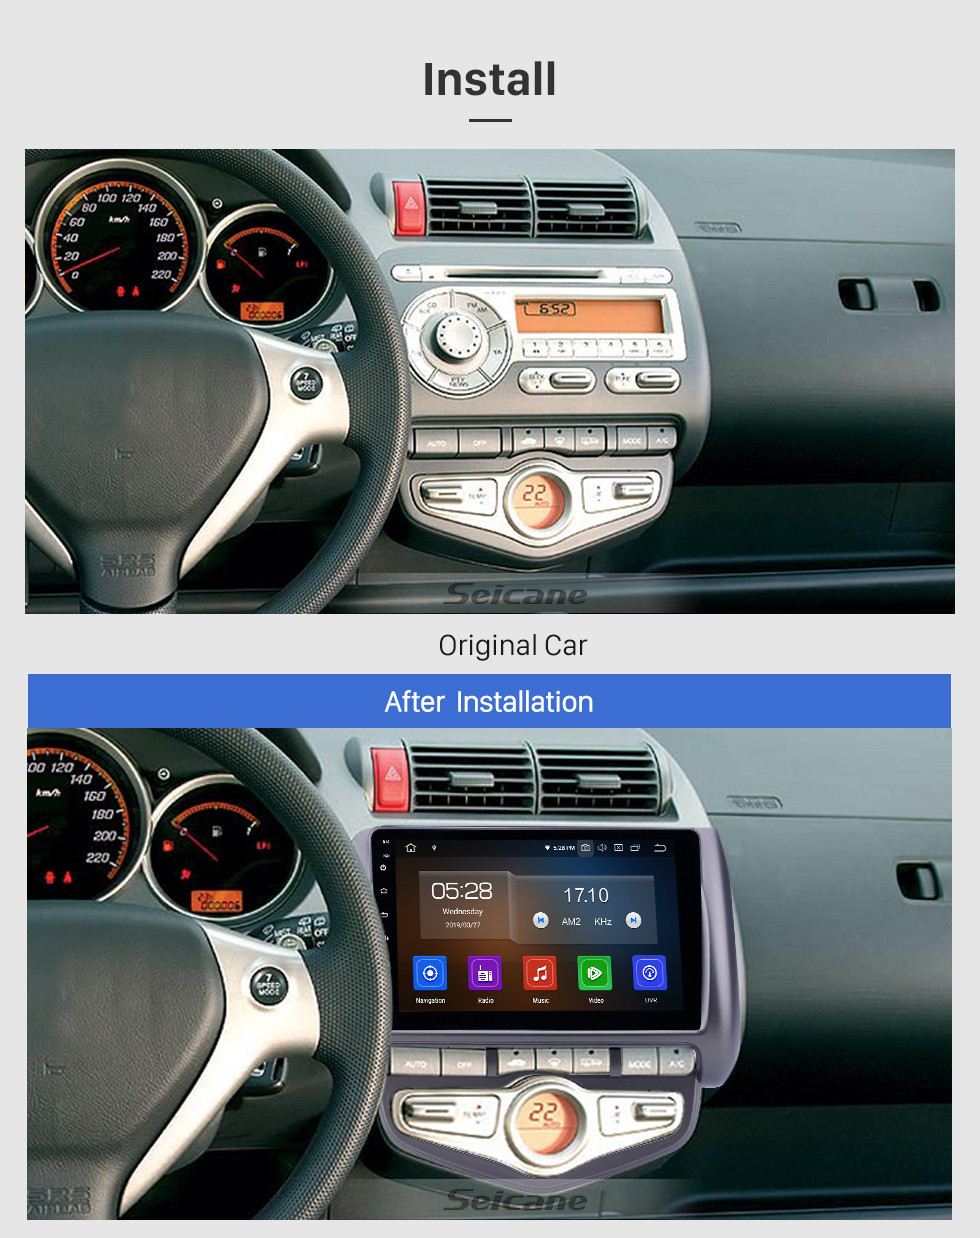 Seicane 9 inch Android 10.0 GPS Navigation Radio for 2006 Honda Jazz City Auto AC LHD with HD Touchscreen Carplay AUX Bluetooth support 1080P